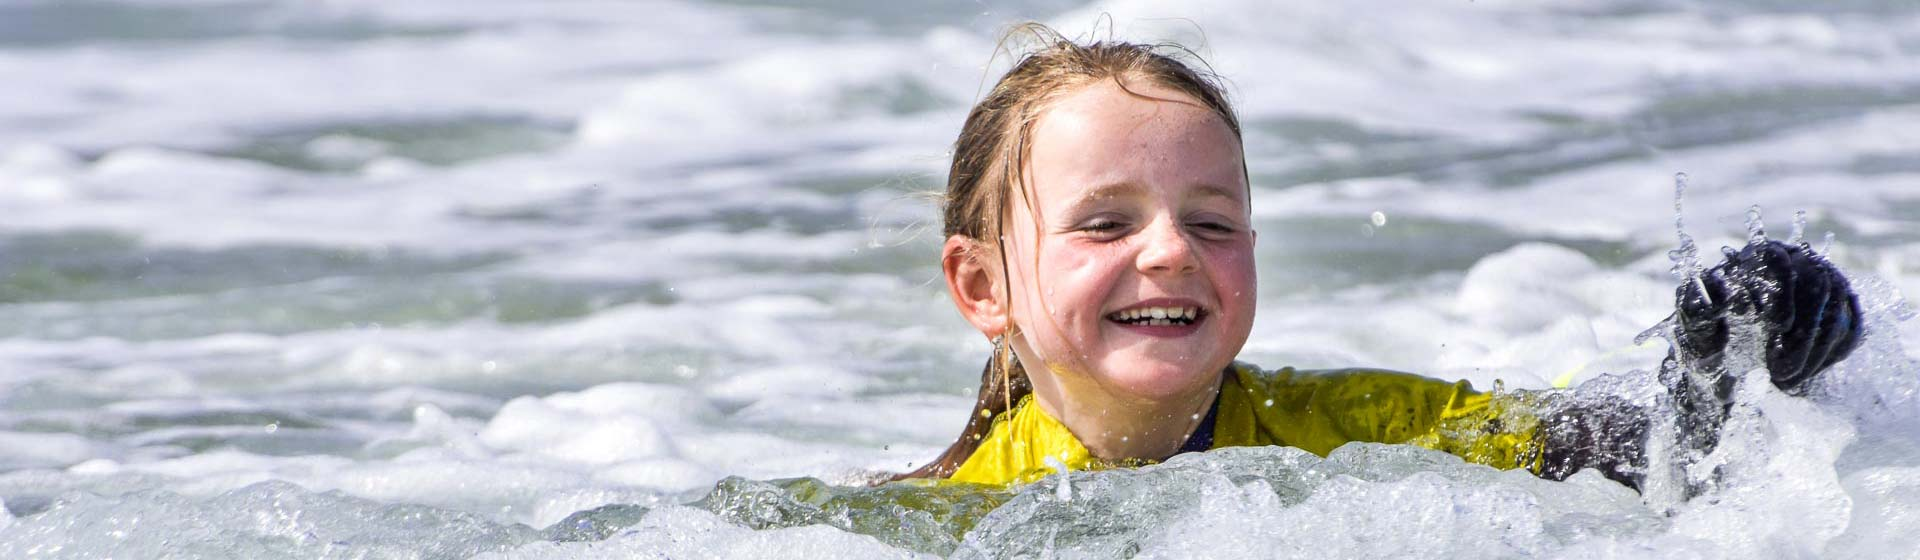 Waves Surf School Cornwall - Contact to book surfing lessons